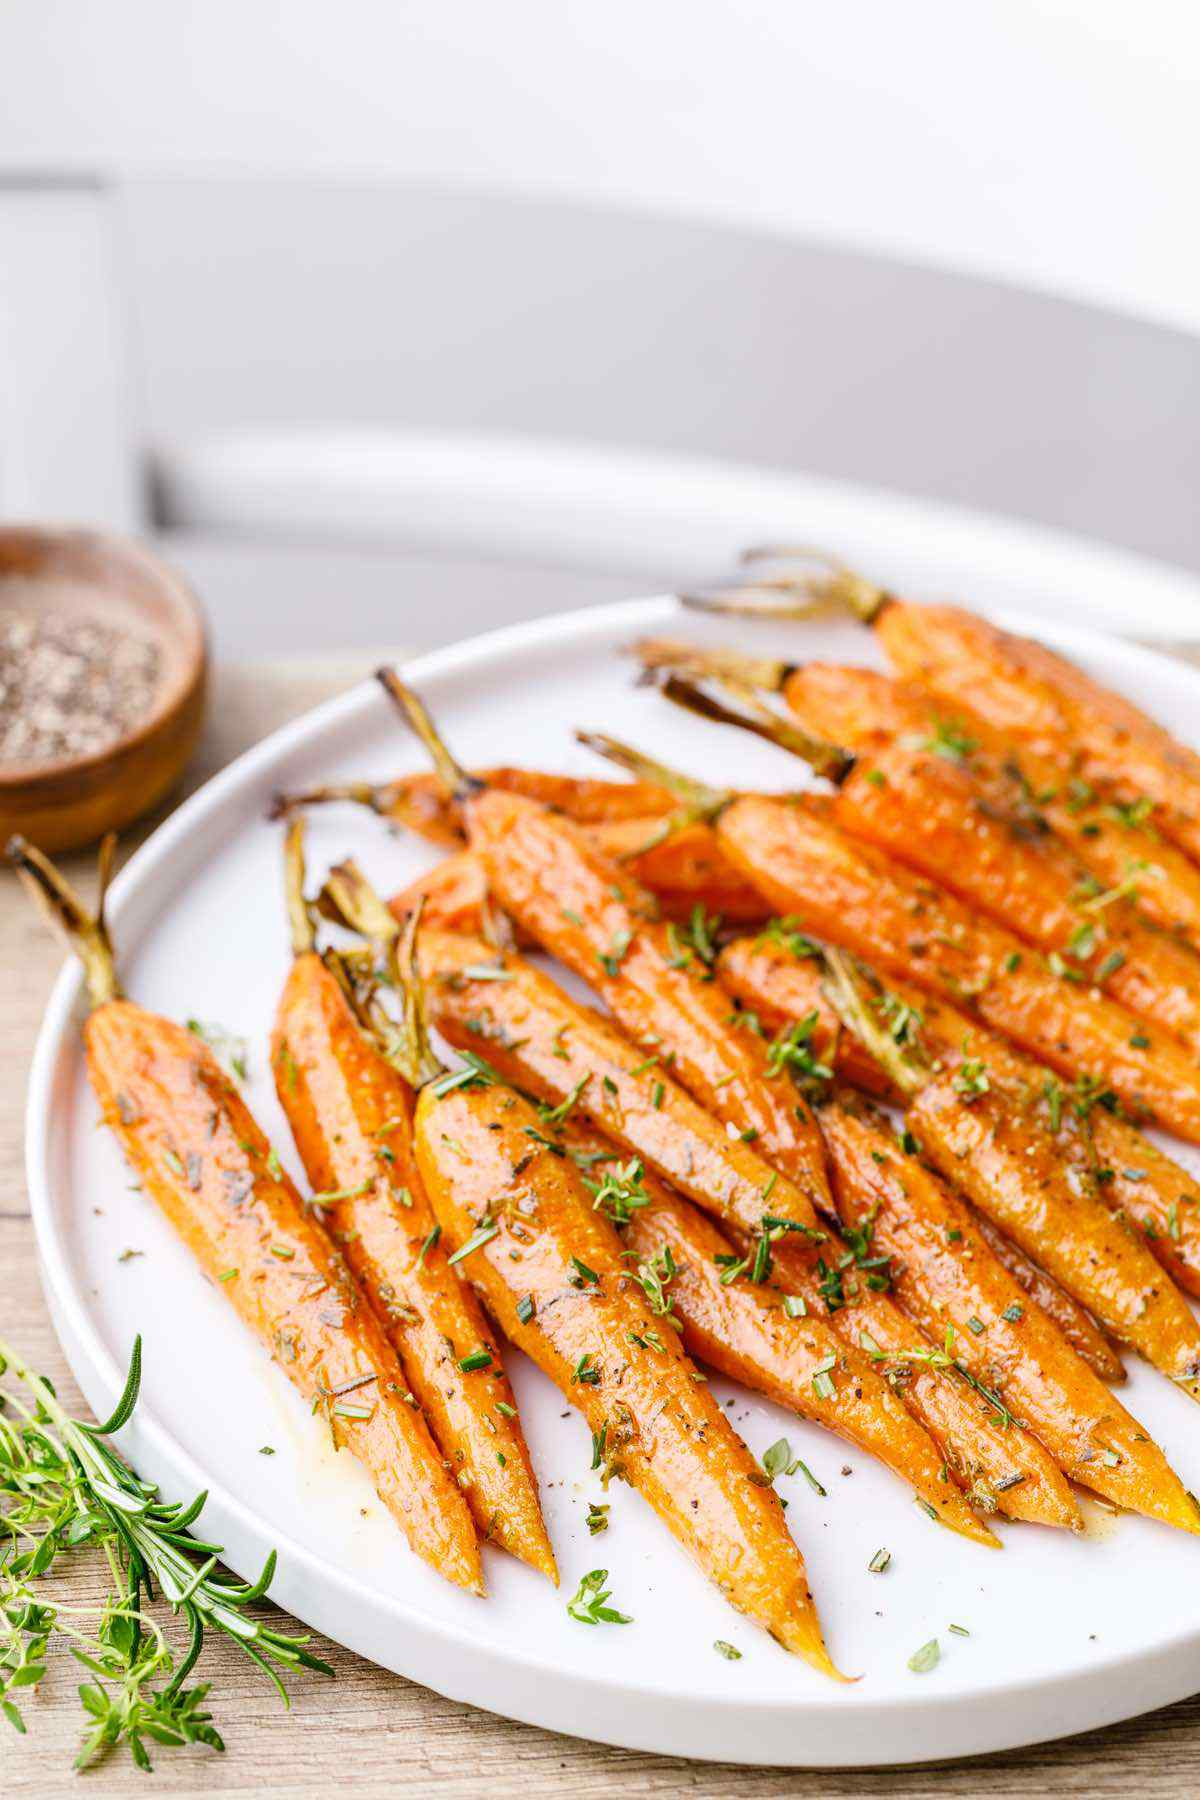 Oven Roasted Baby Carrots with Thyme and Rosemary